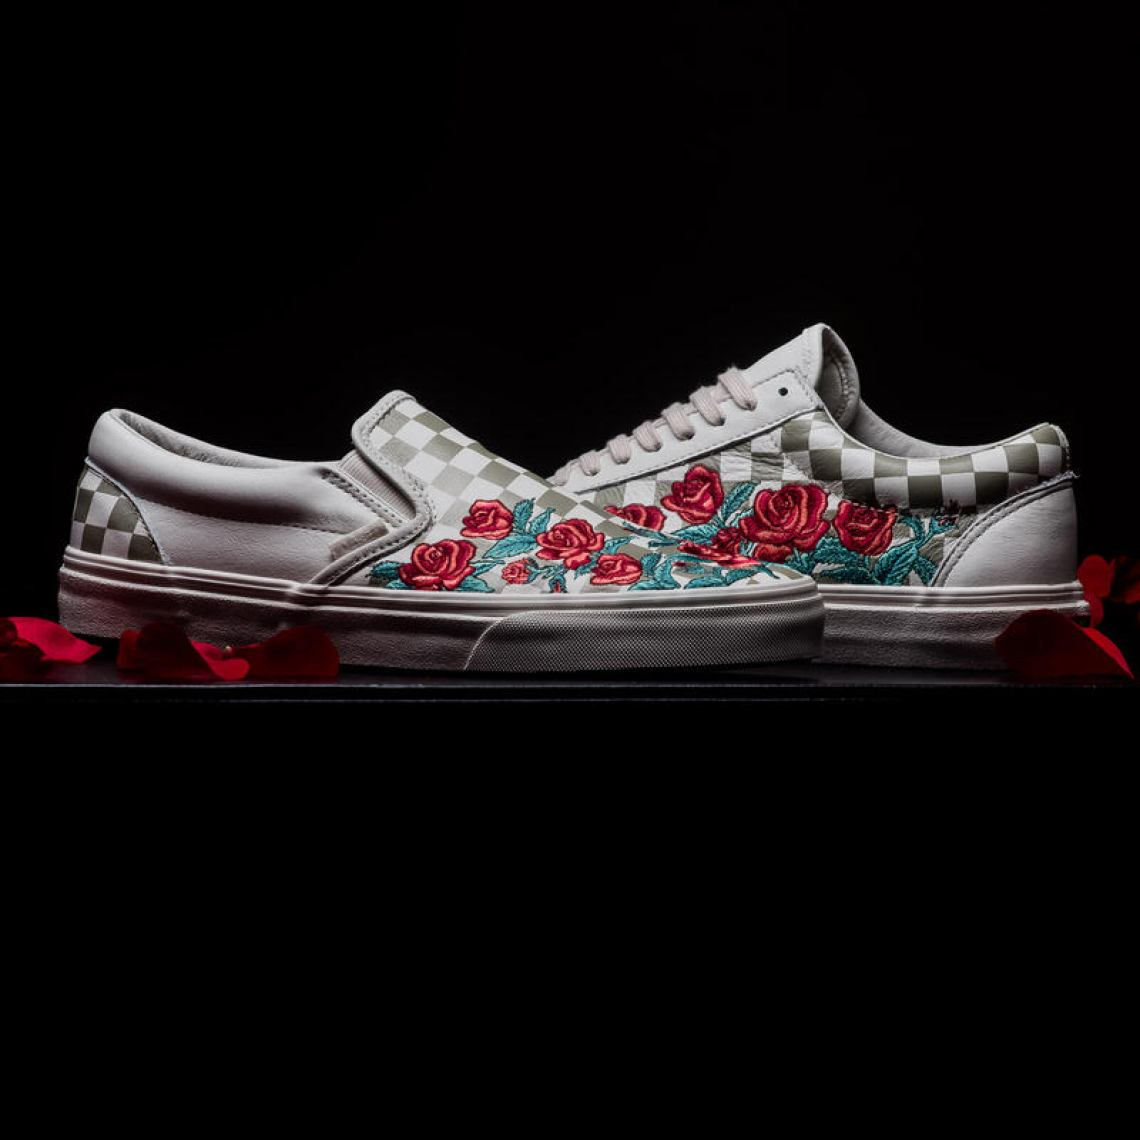 """Vans Classic Slip DX """"Rose Embroidery""""    Available Now  ffa19e665"""